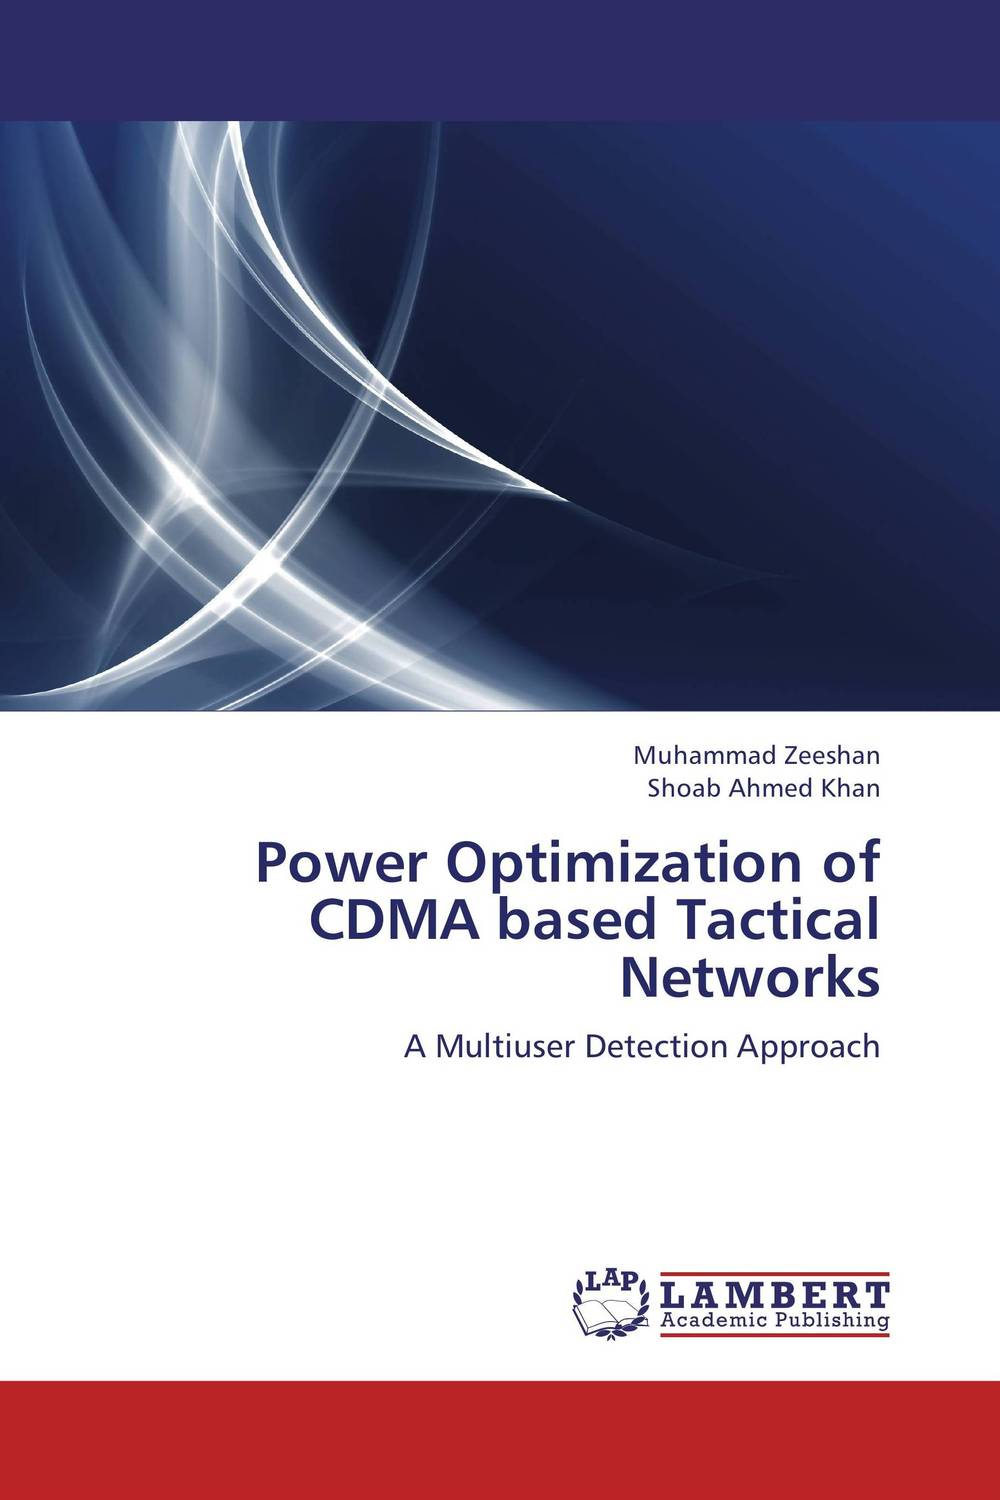 Power Optimization of CDMA based Tactical Networks